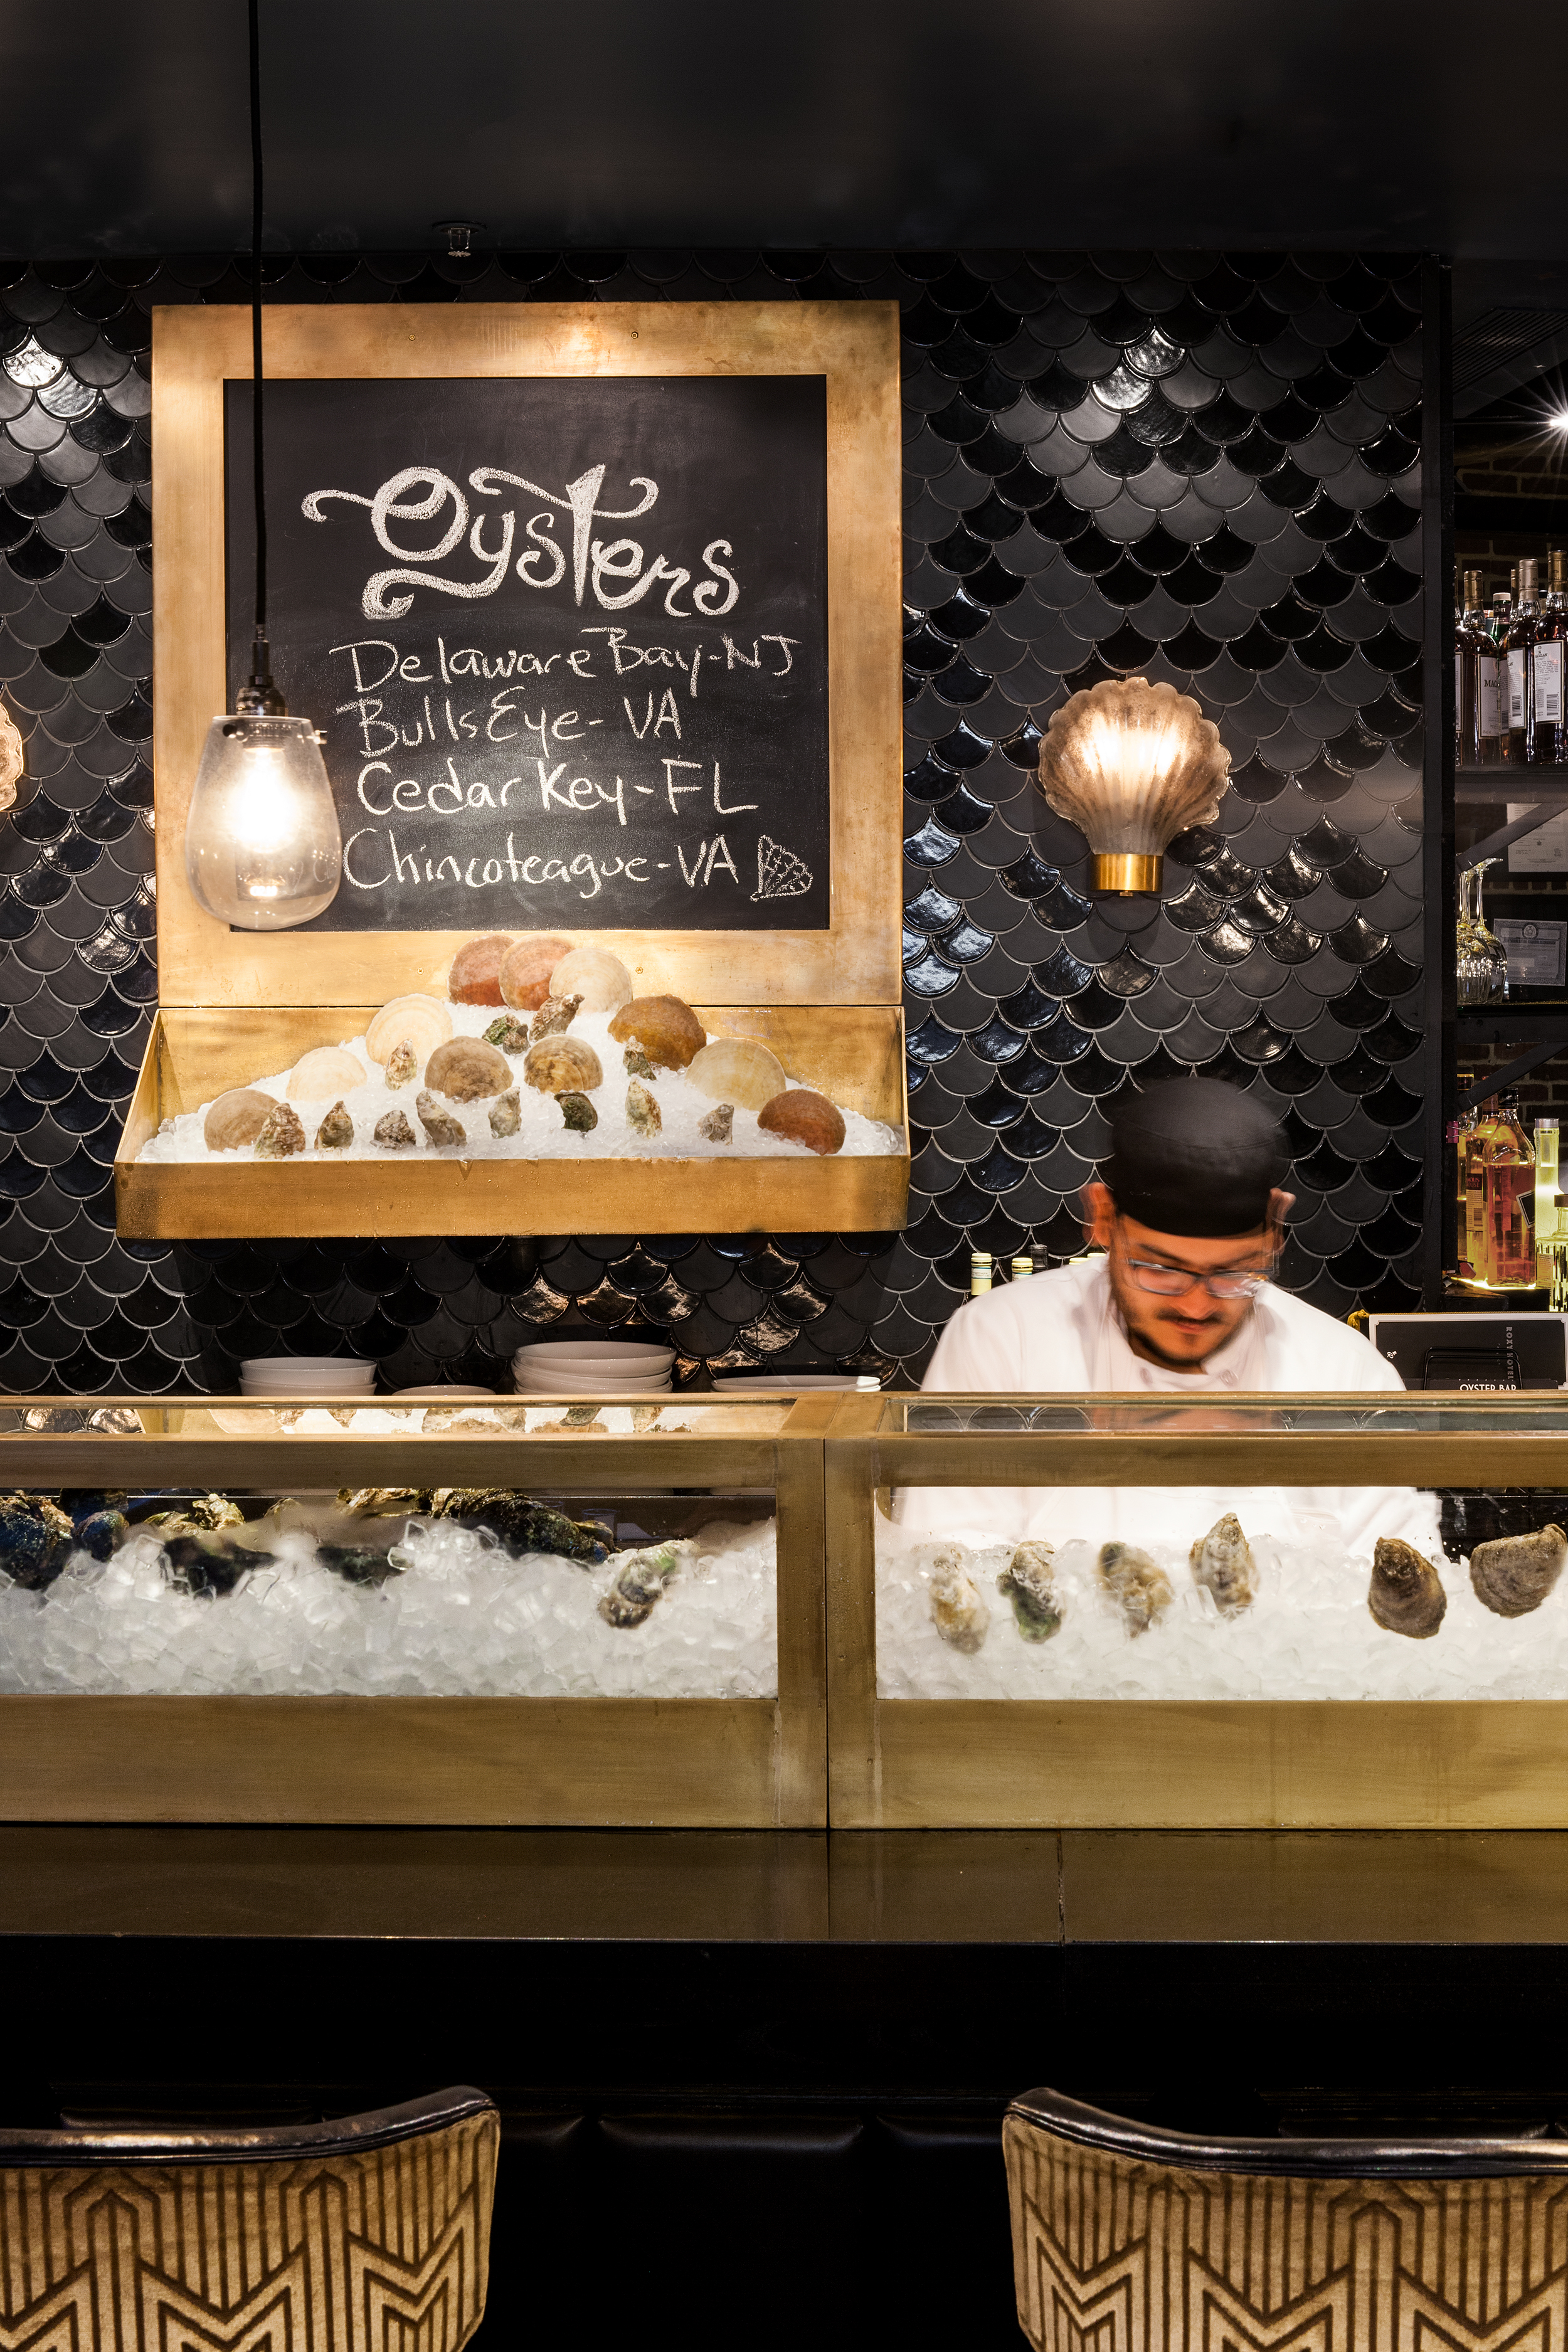 ROXY OYSTER BAR and CONCESSION    New York, NY    The Roxy Hotel in TriBeCa hired us to help realize a radical transformation of their public amenity spaces within the hotel. STUDIOjamieson took several under-utilized spaces and transformed them into branded programming within the hotel.  We first inserted  Jack's Stir Brew Coffee  into a former egress bay of the facade.  We were then commissioned to create a new Oyster Bar within the existing lobby restaurant area and a new concession stand to service their basement art-house cinema.    The Oyster Bar features custom brushed brass cold display cases, vintage clam-shell lighting sconces and Moroccan fish-scales mosaic tile.    The Concession stand features a custom curved wood and glass display case to compliment the existing cinema lobby geometry.  The neon cinema sign was salvaged and retrofit to serve as the new menu board.  Theater style lighting was added to complete the look.     All photography © Heidi's Bridge